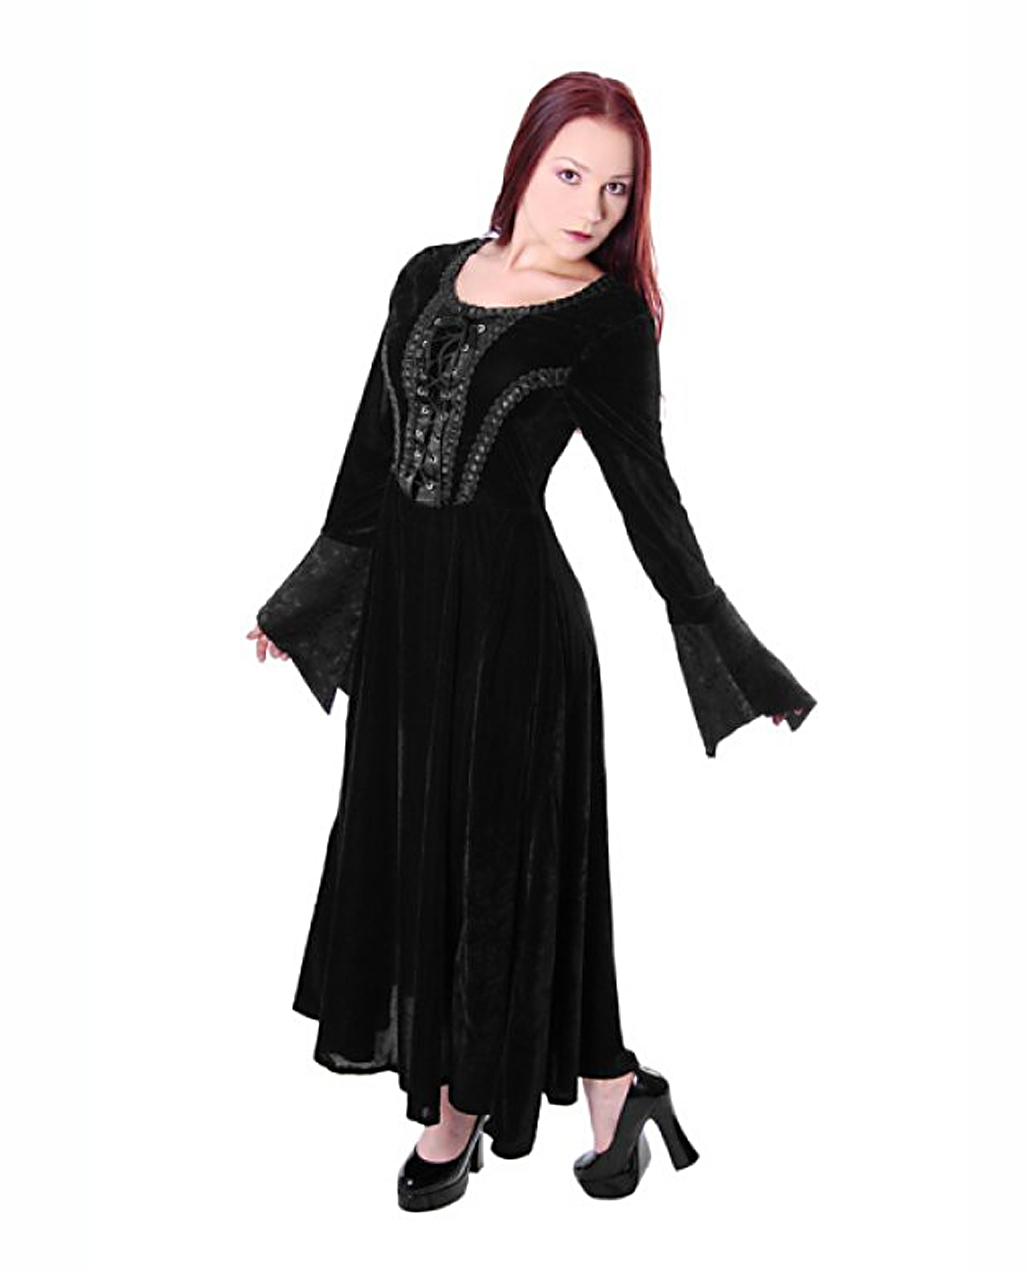 Buy High gothic fashion picture trends